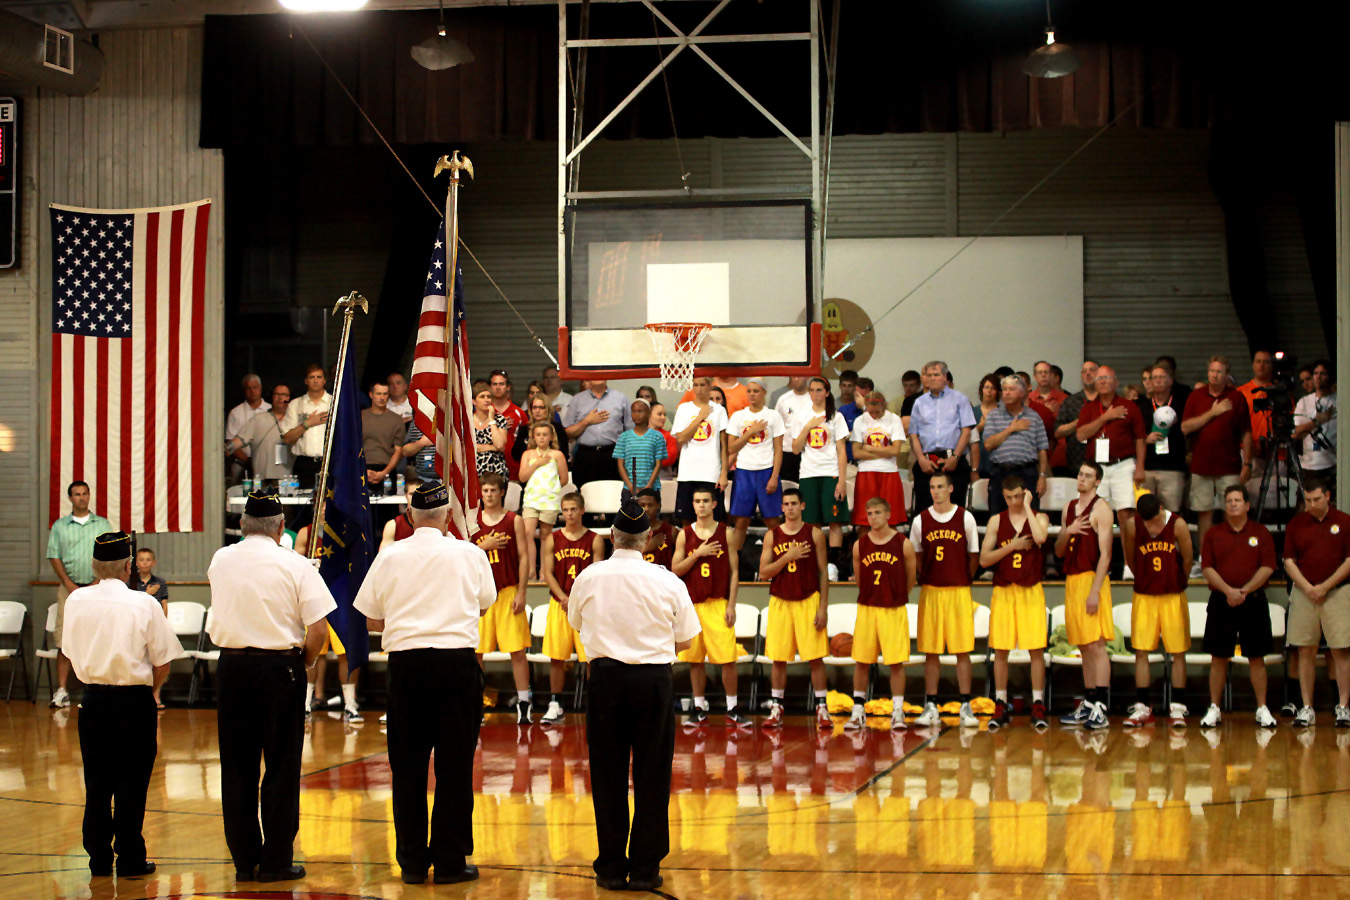 The Knightstown American Legion Post 152 Honor Guard presents the colors prior to tip-off at the 2011 Hoosiers Reunion All-Star Classic Doubleheader. Located on Main Street (U.S. 40) in Knightstown, American Legion Post 152 is one of few area posts to offer honor guard services at ball games and veteran funerals.